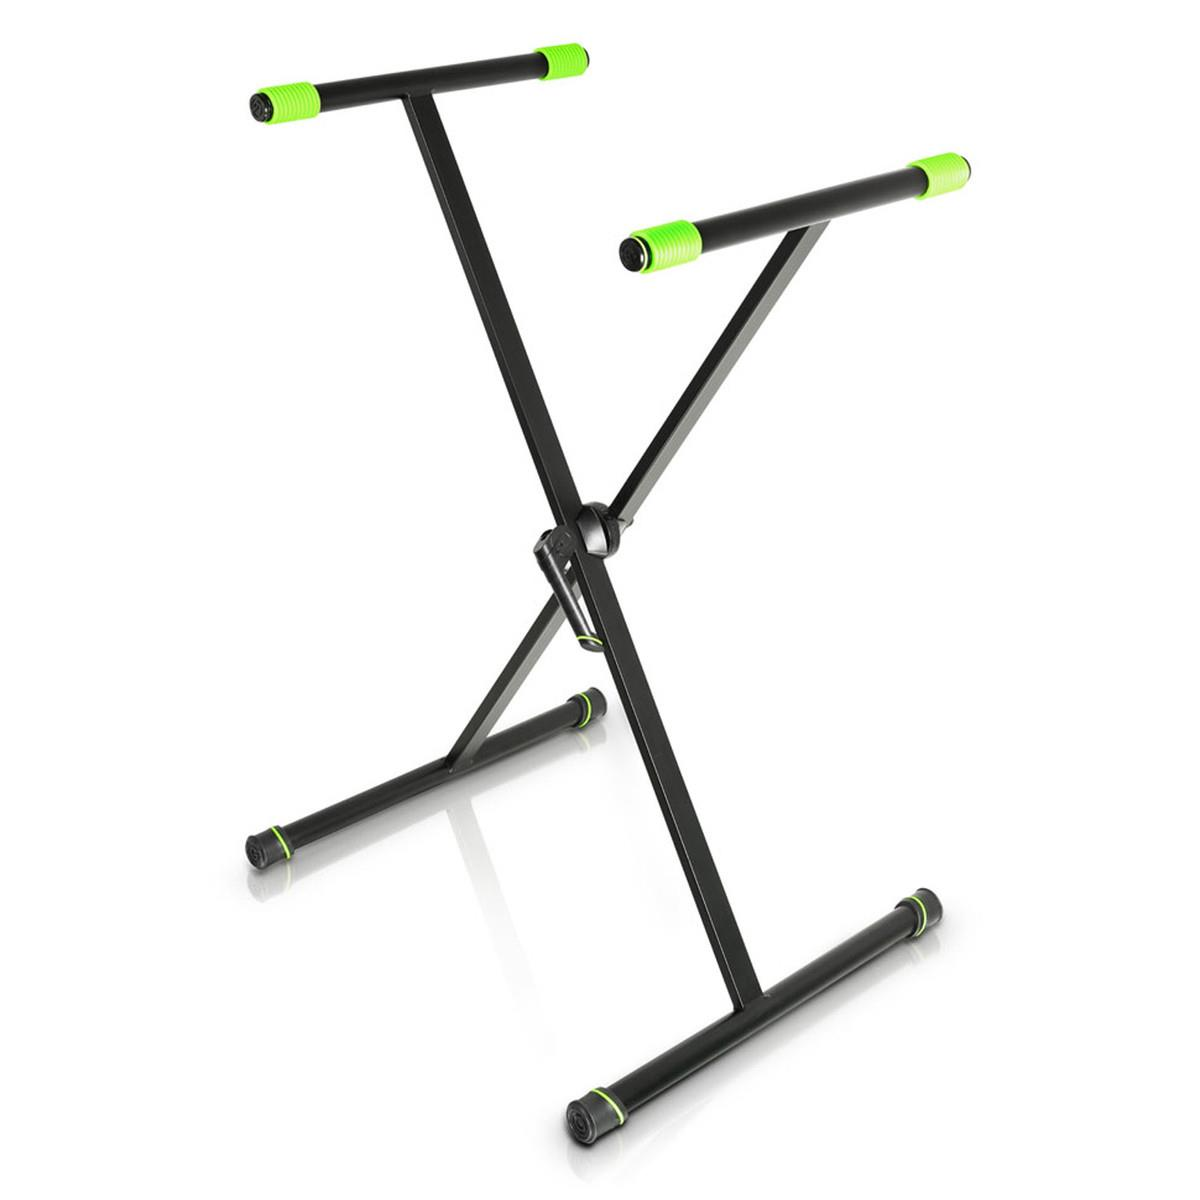 Gravity GKSX1 Single Braced Keyboardstand | Keymusic